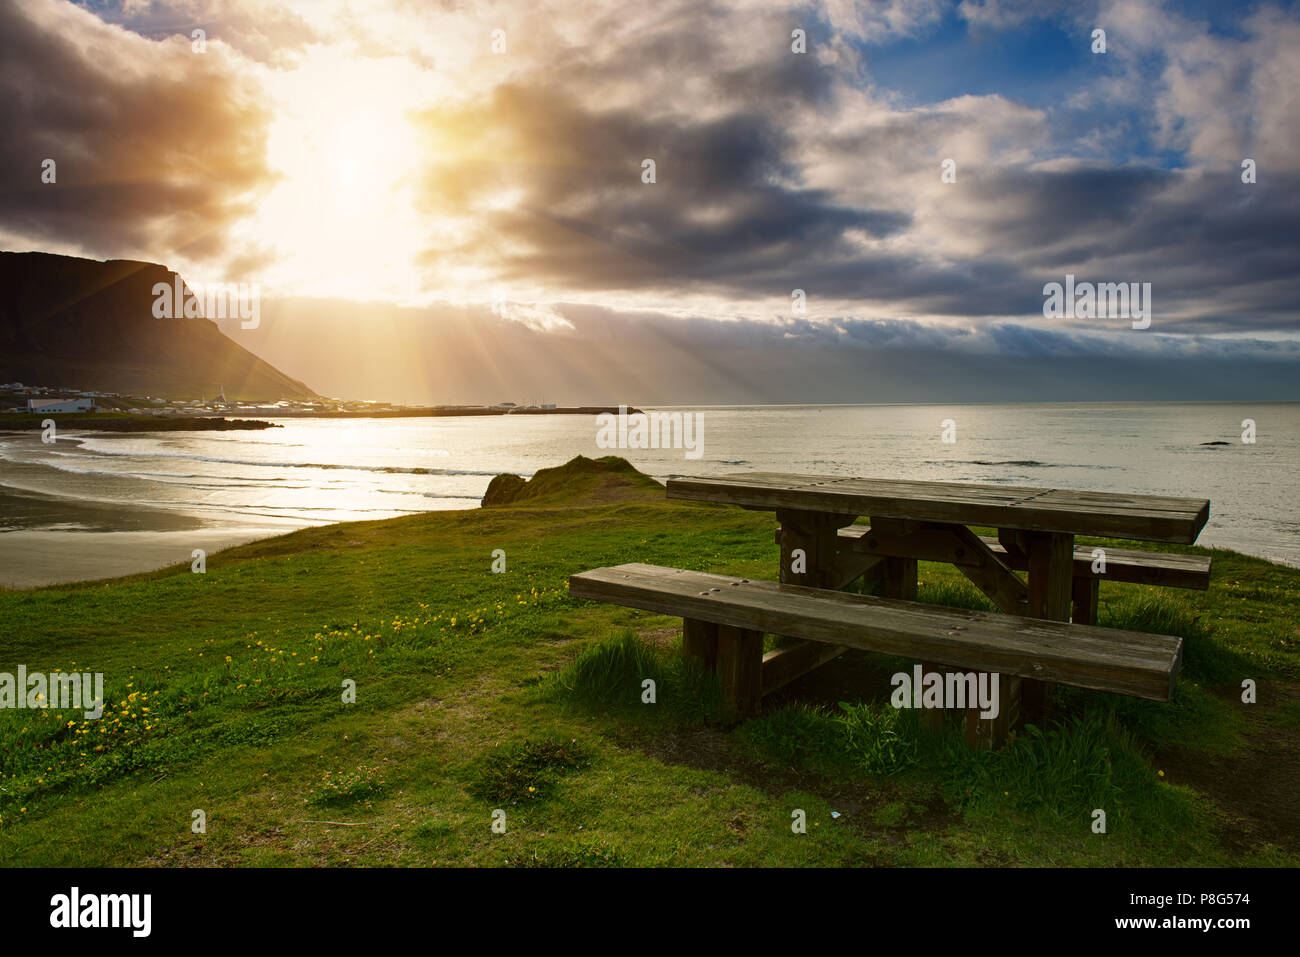 Picnic table in Iceland - Stock Image